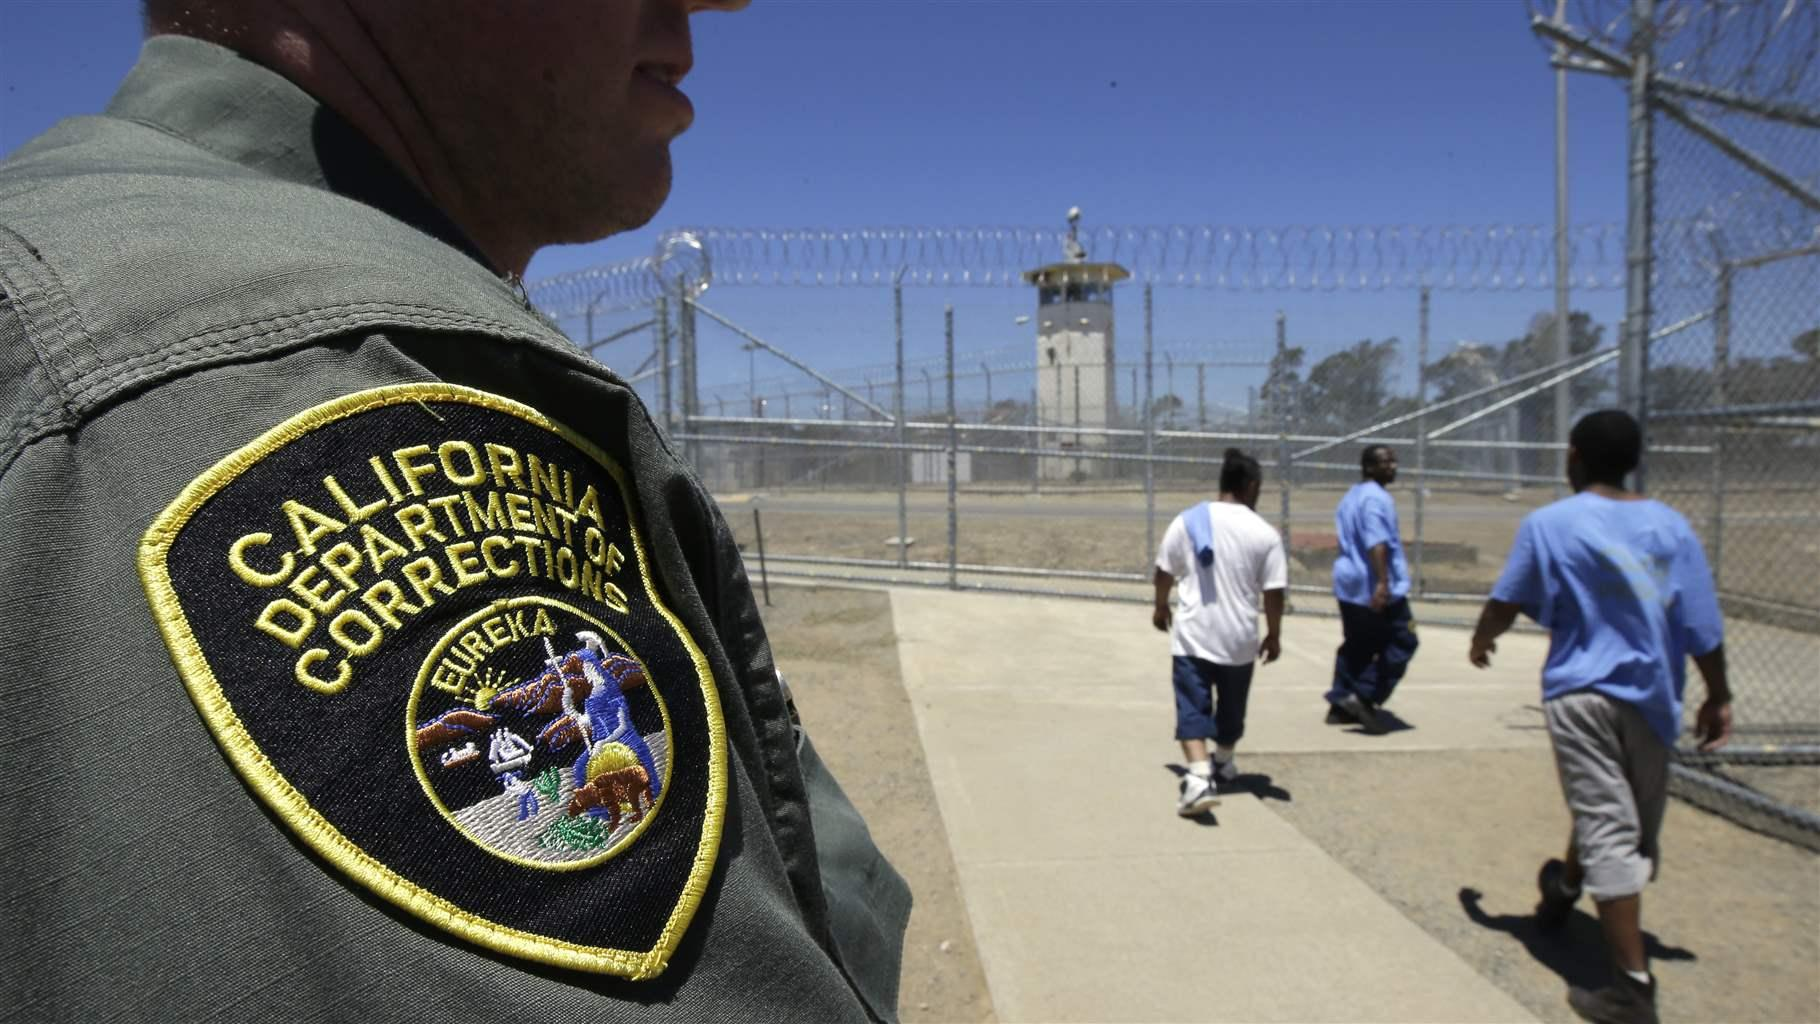 New Laws For Inmates 2020 California Counting Prison Inmates Differently Could Shift Political Power to